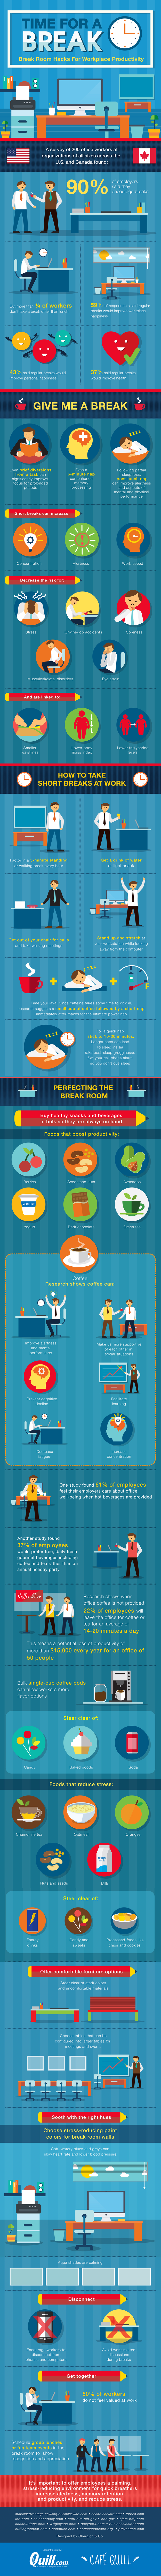 Does Taking A Break Improve Productivity At Work